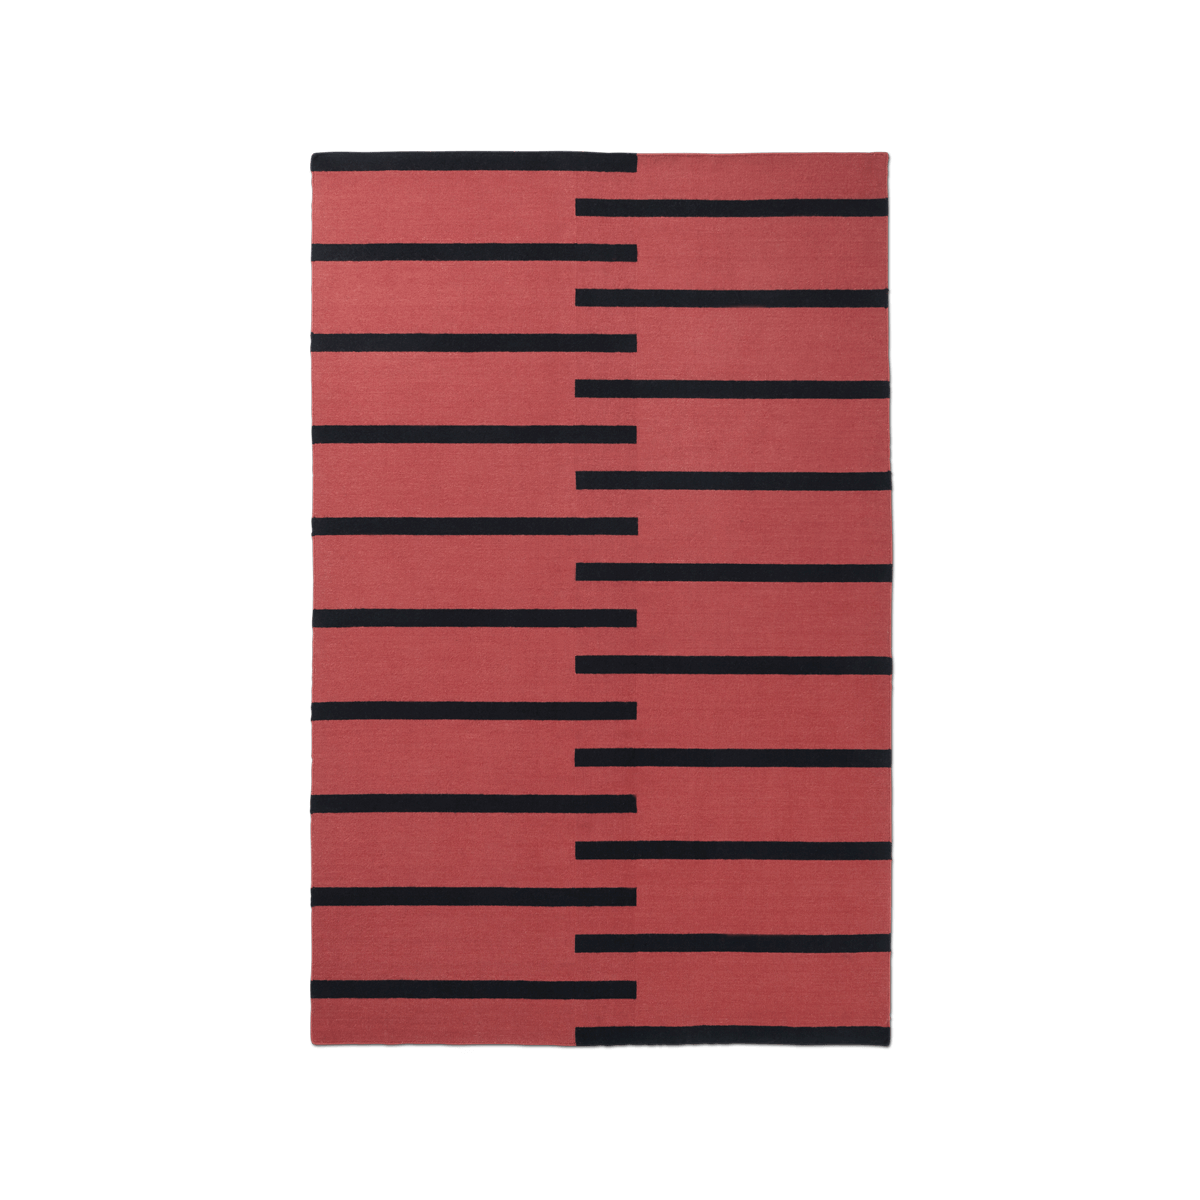 Product image of the flatweave rug Tiger in the color Red. The rug has thick, graphic black lines as a pattern.